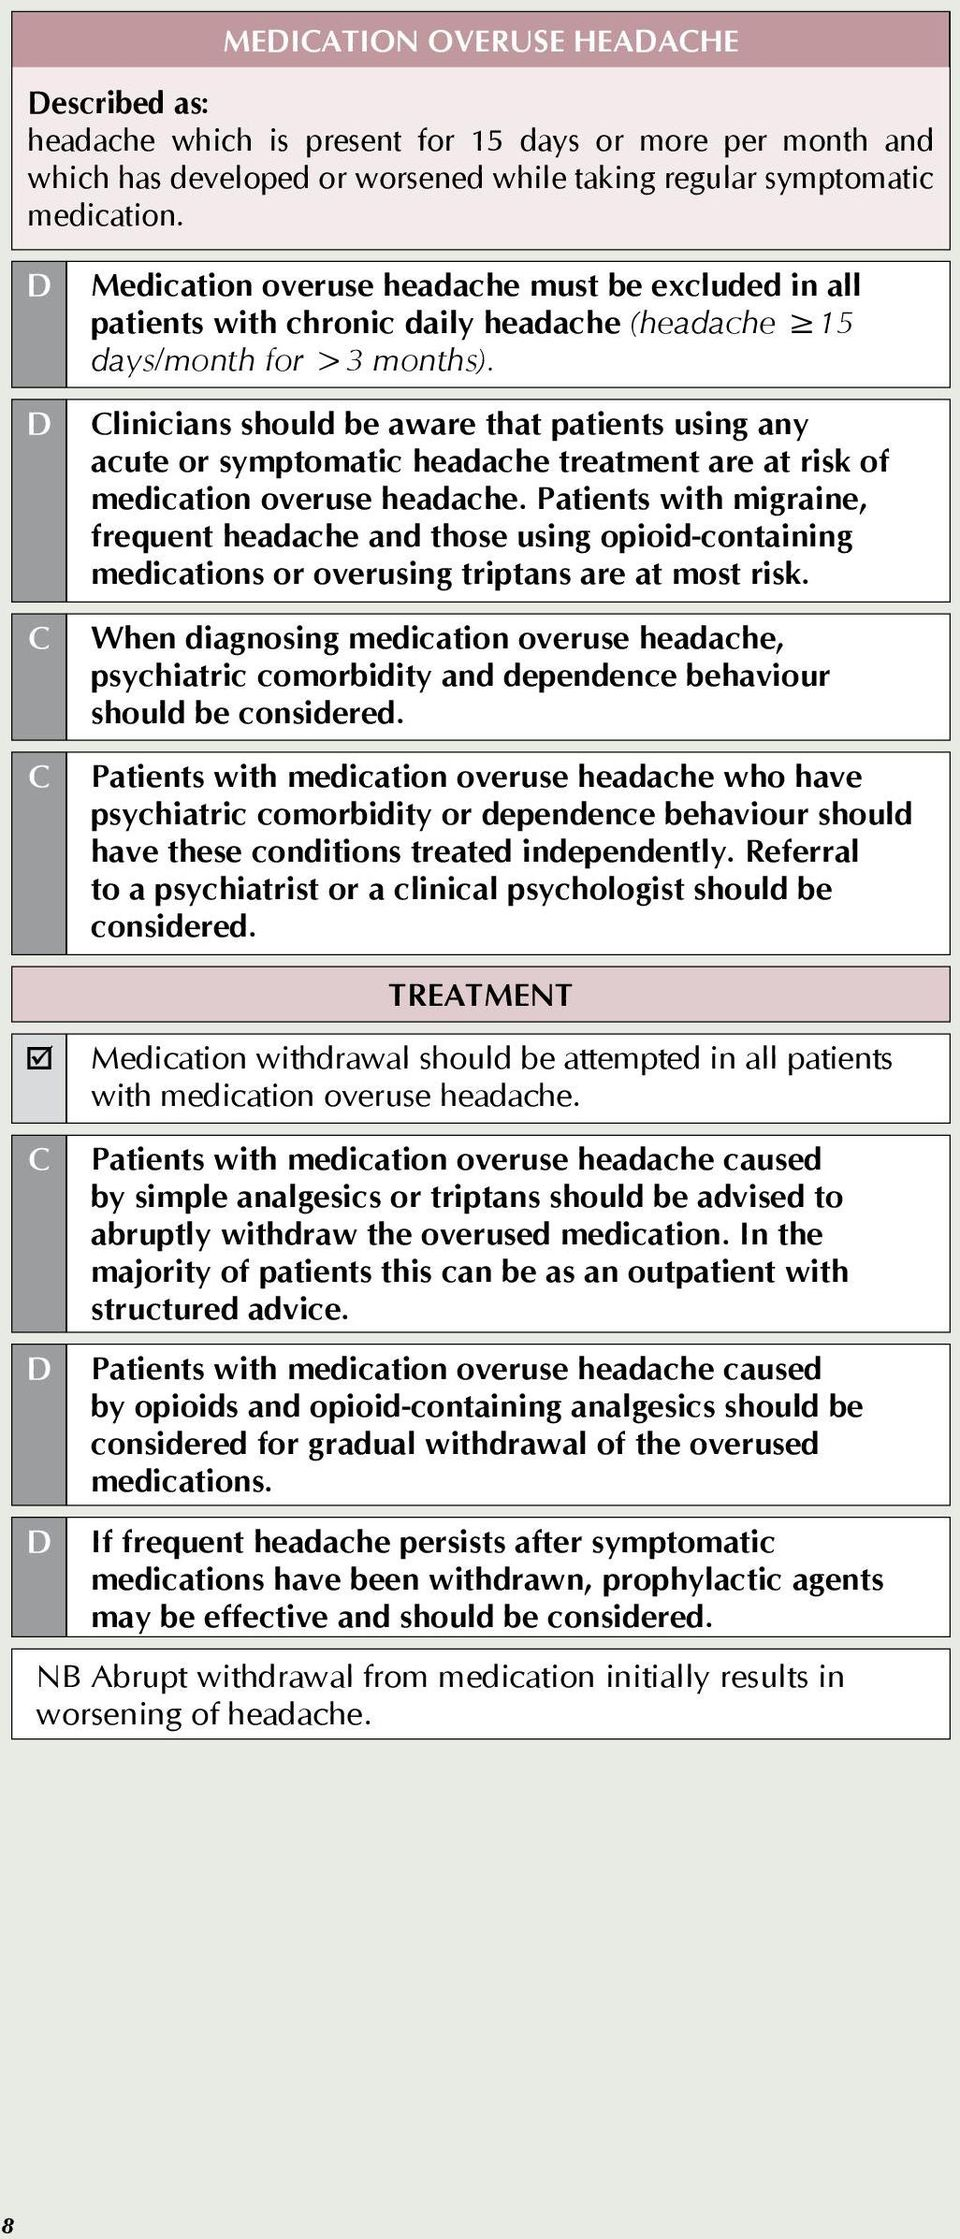 linicians should be aware that patients using any acute or symptomatic headache treatment are at risk of medication overuse headache.